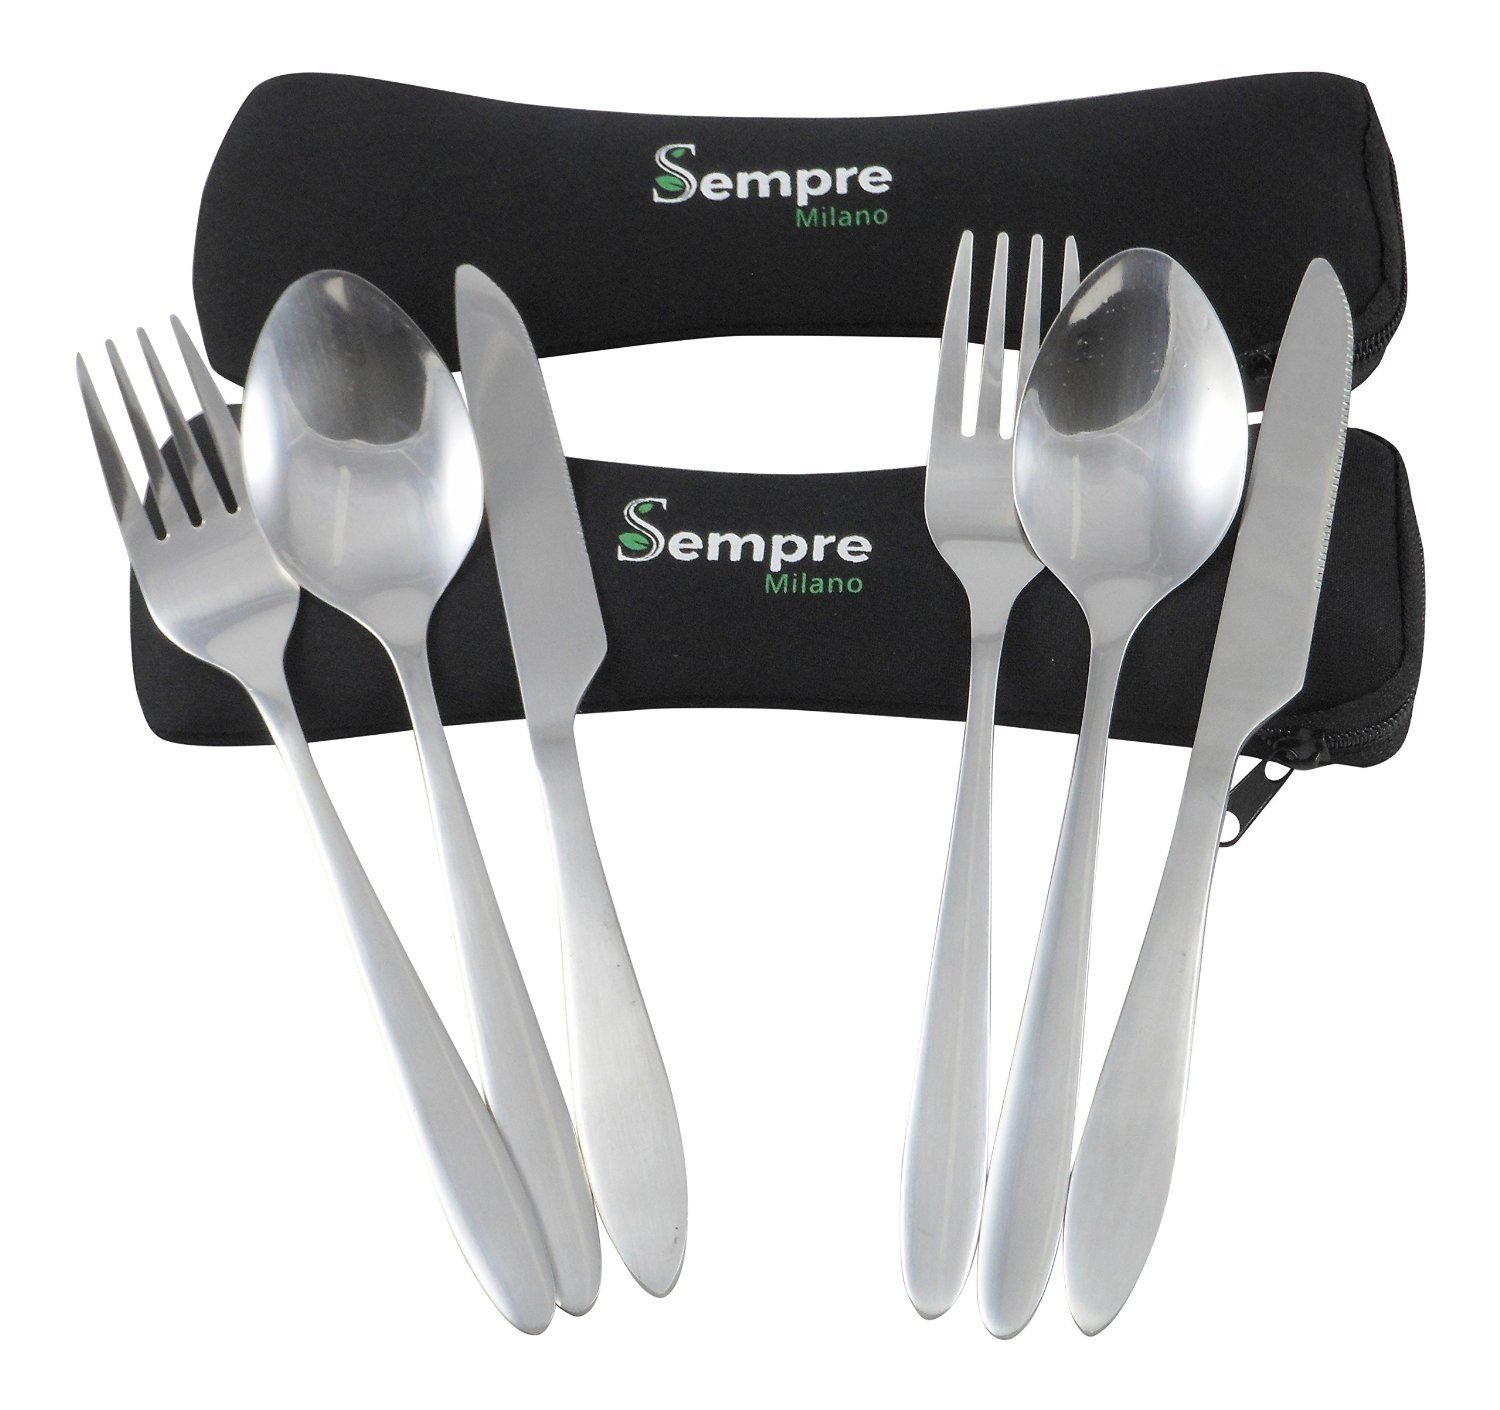 Camping Travel Cutlery Set in Case To Go. 3 Piece Stainless Steel ...